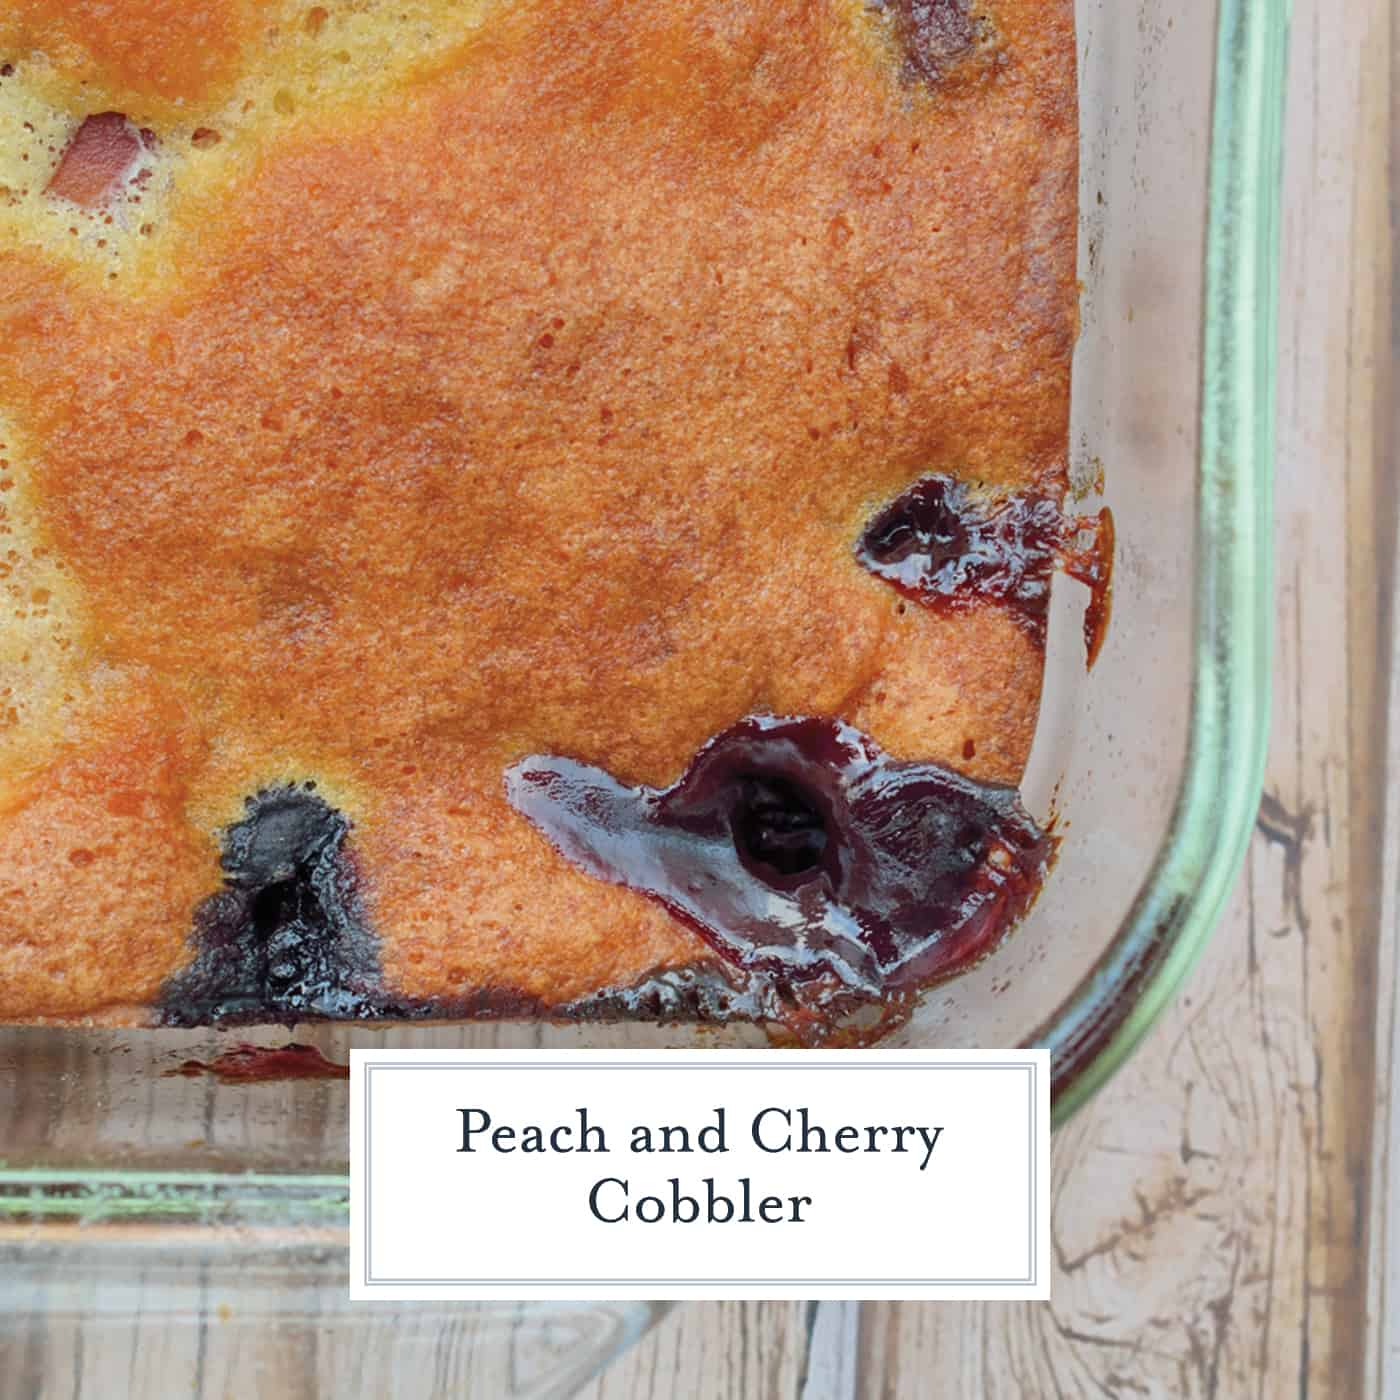 Peach and Cherry Cobbler is an easy cobbler recipe perfect for brunch or dessert. Serve with a scoop of vanilla bean ice cream!  #cobblerrecipe #homemadecobbler www.savoryexperiments.com